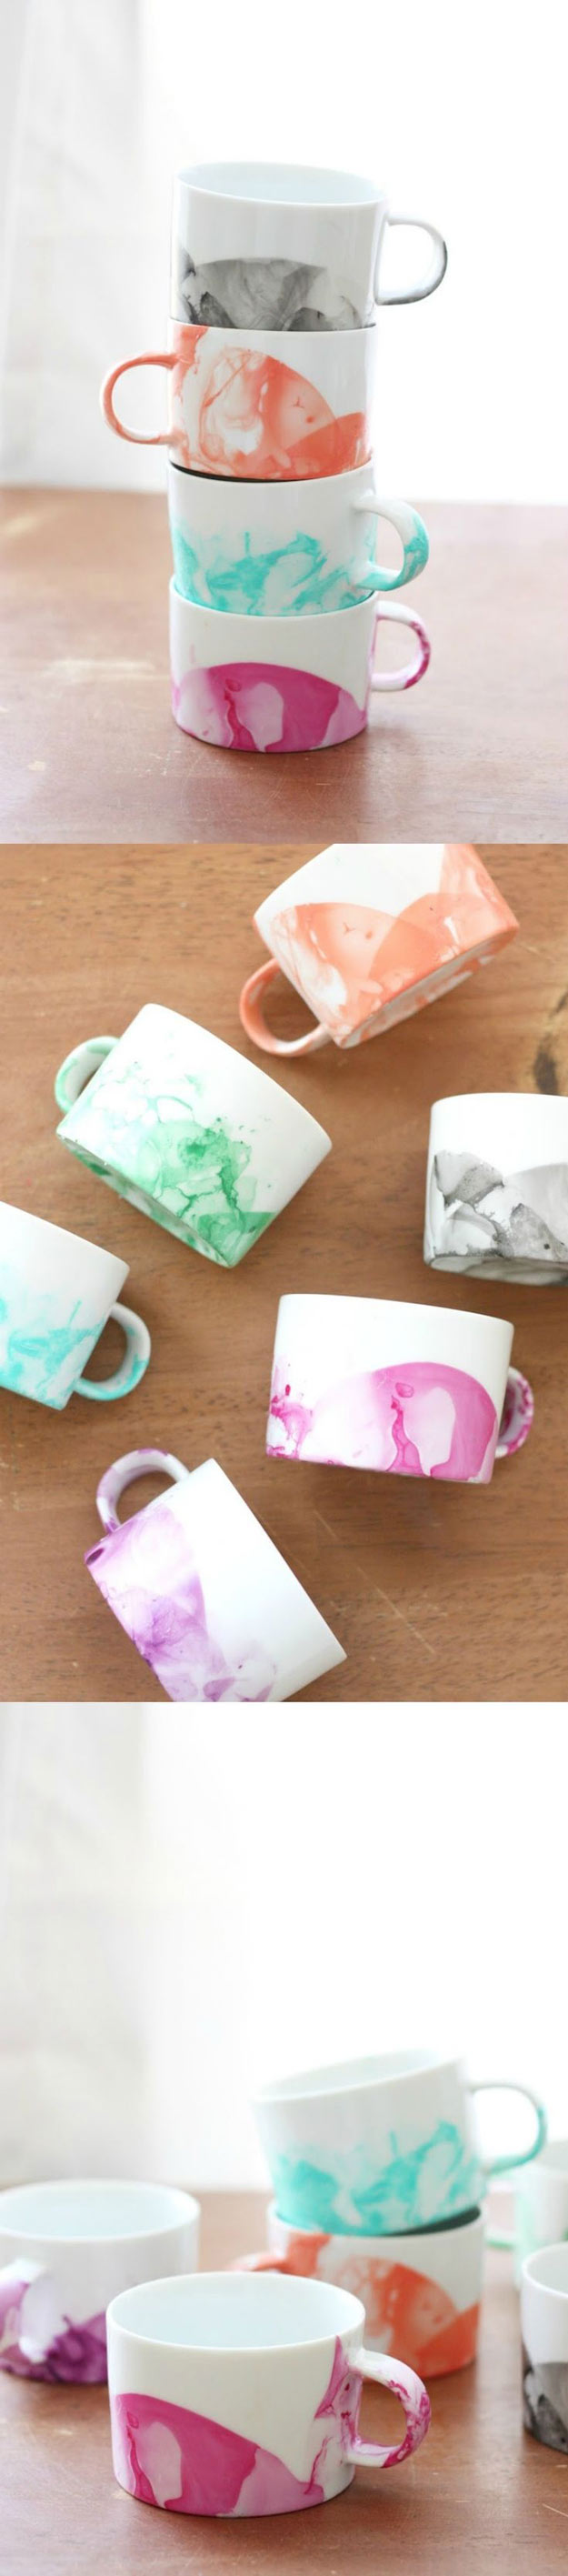 DIY Marbled Mugs With Nail